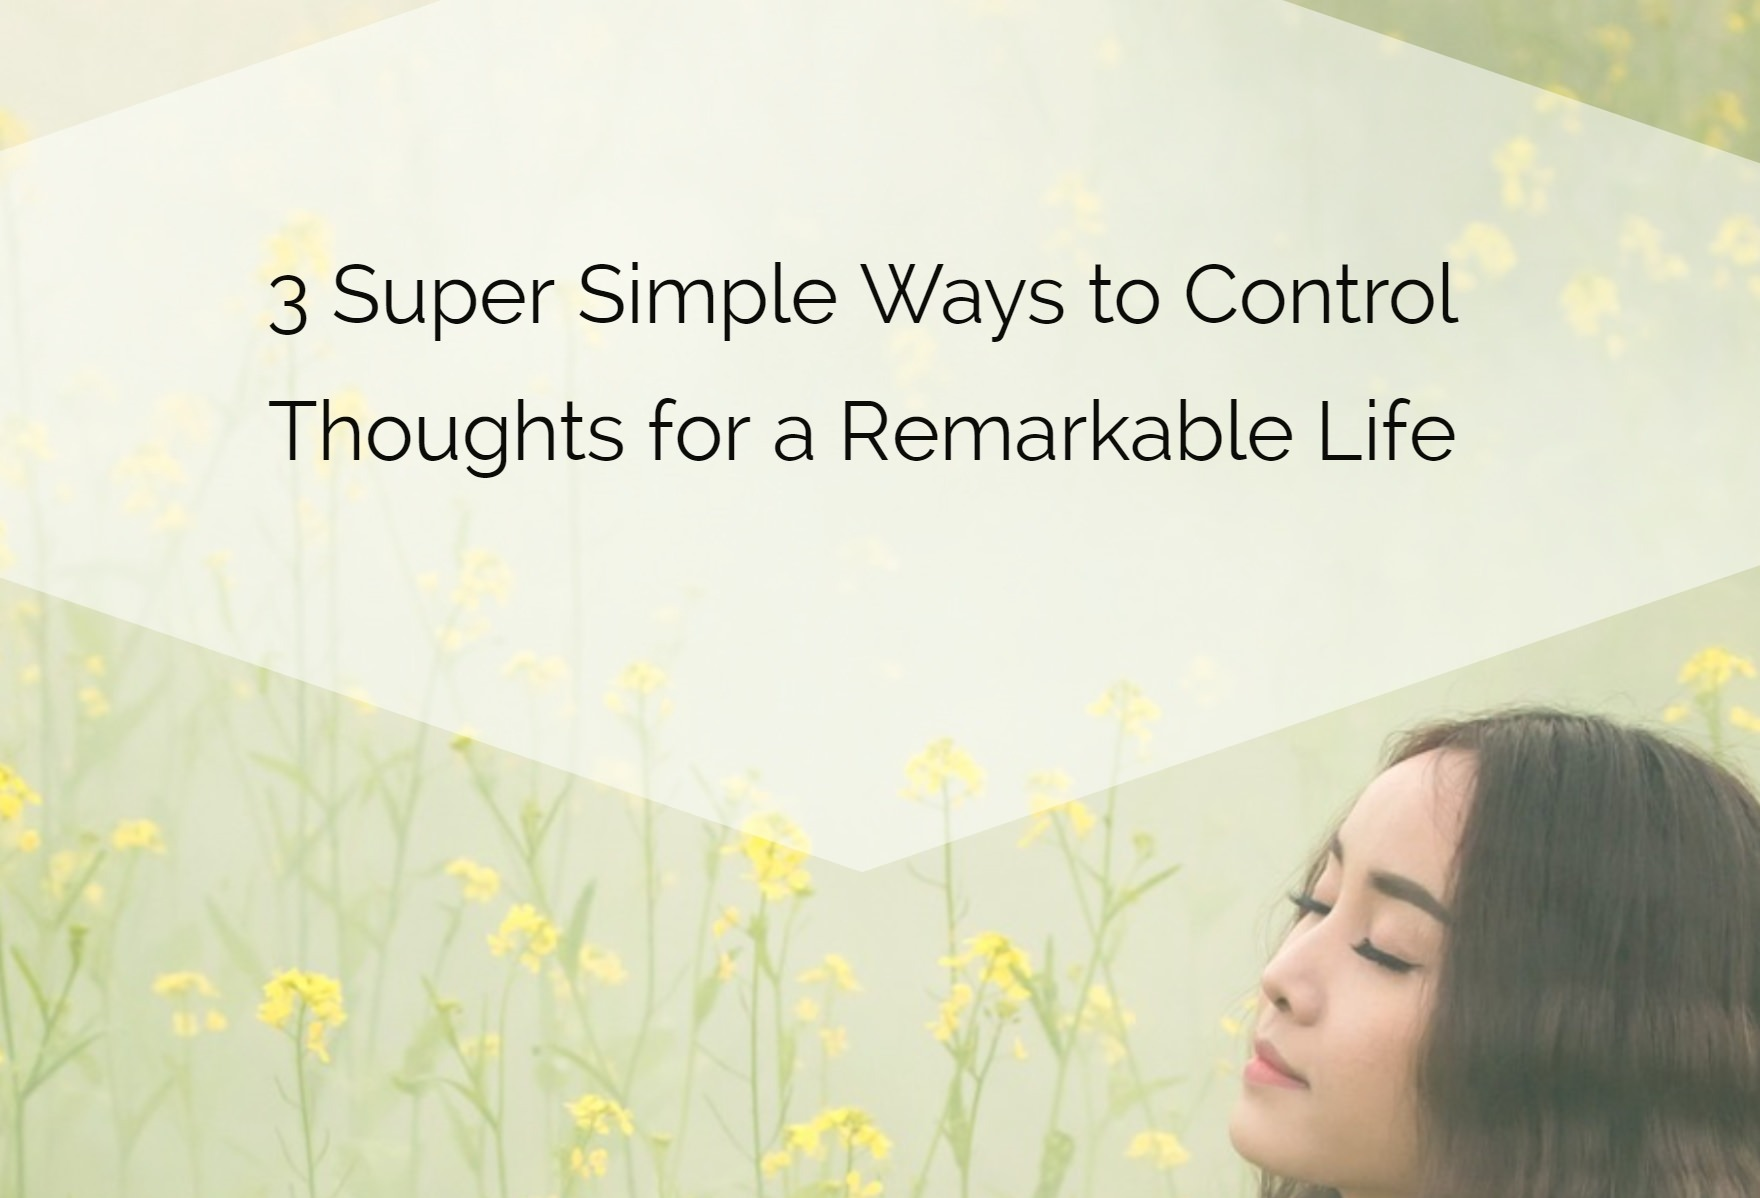 Control Your Thoughts to Control Your Life